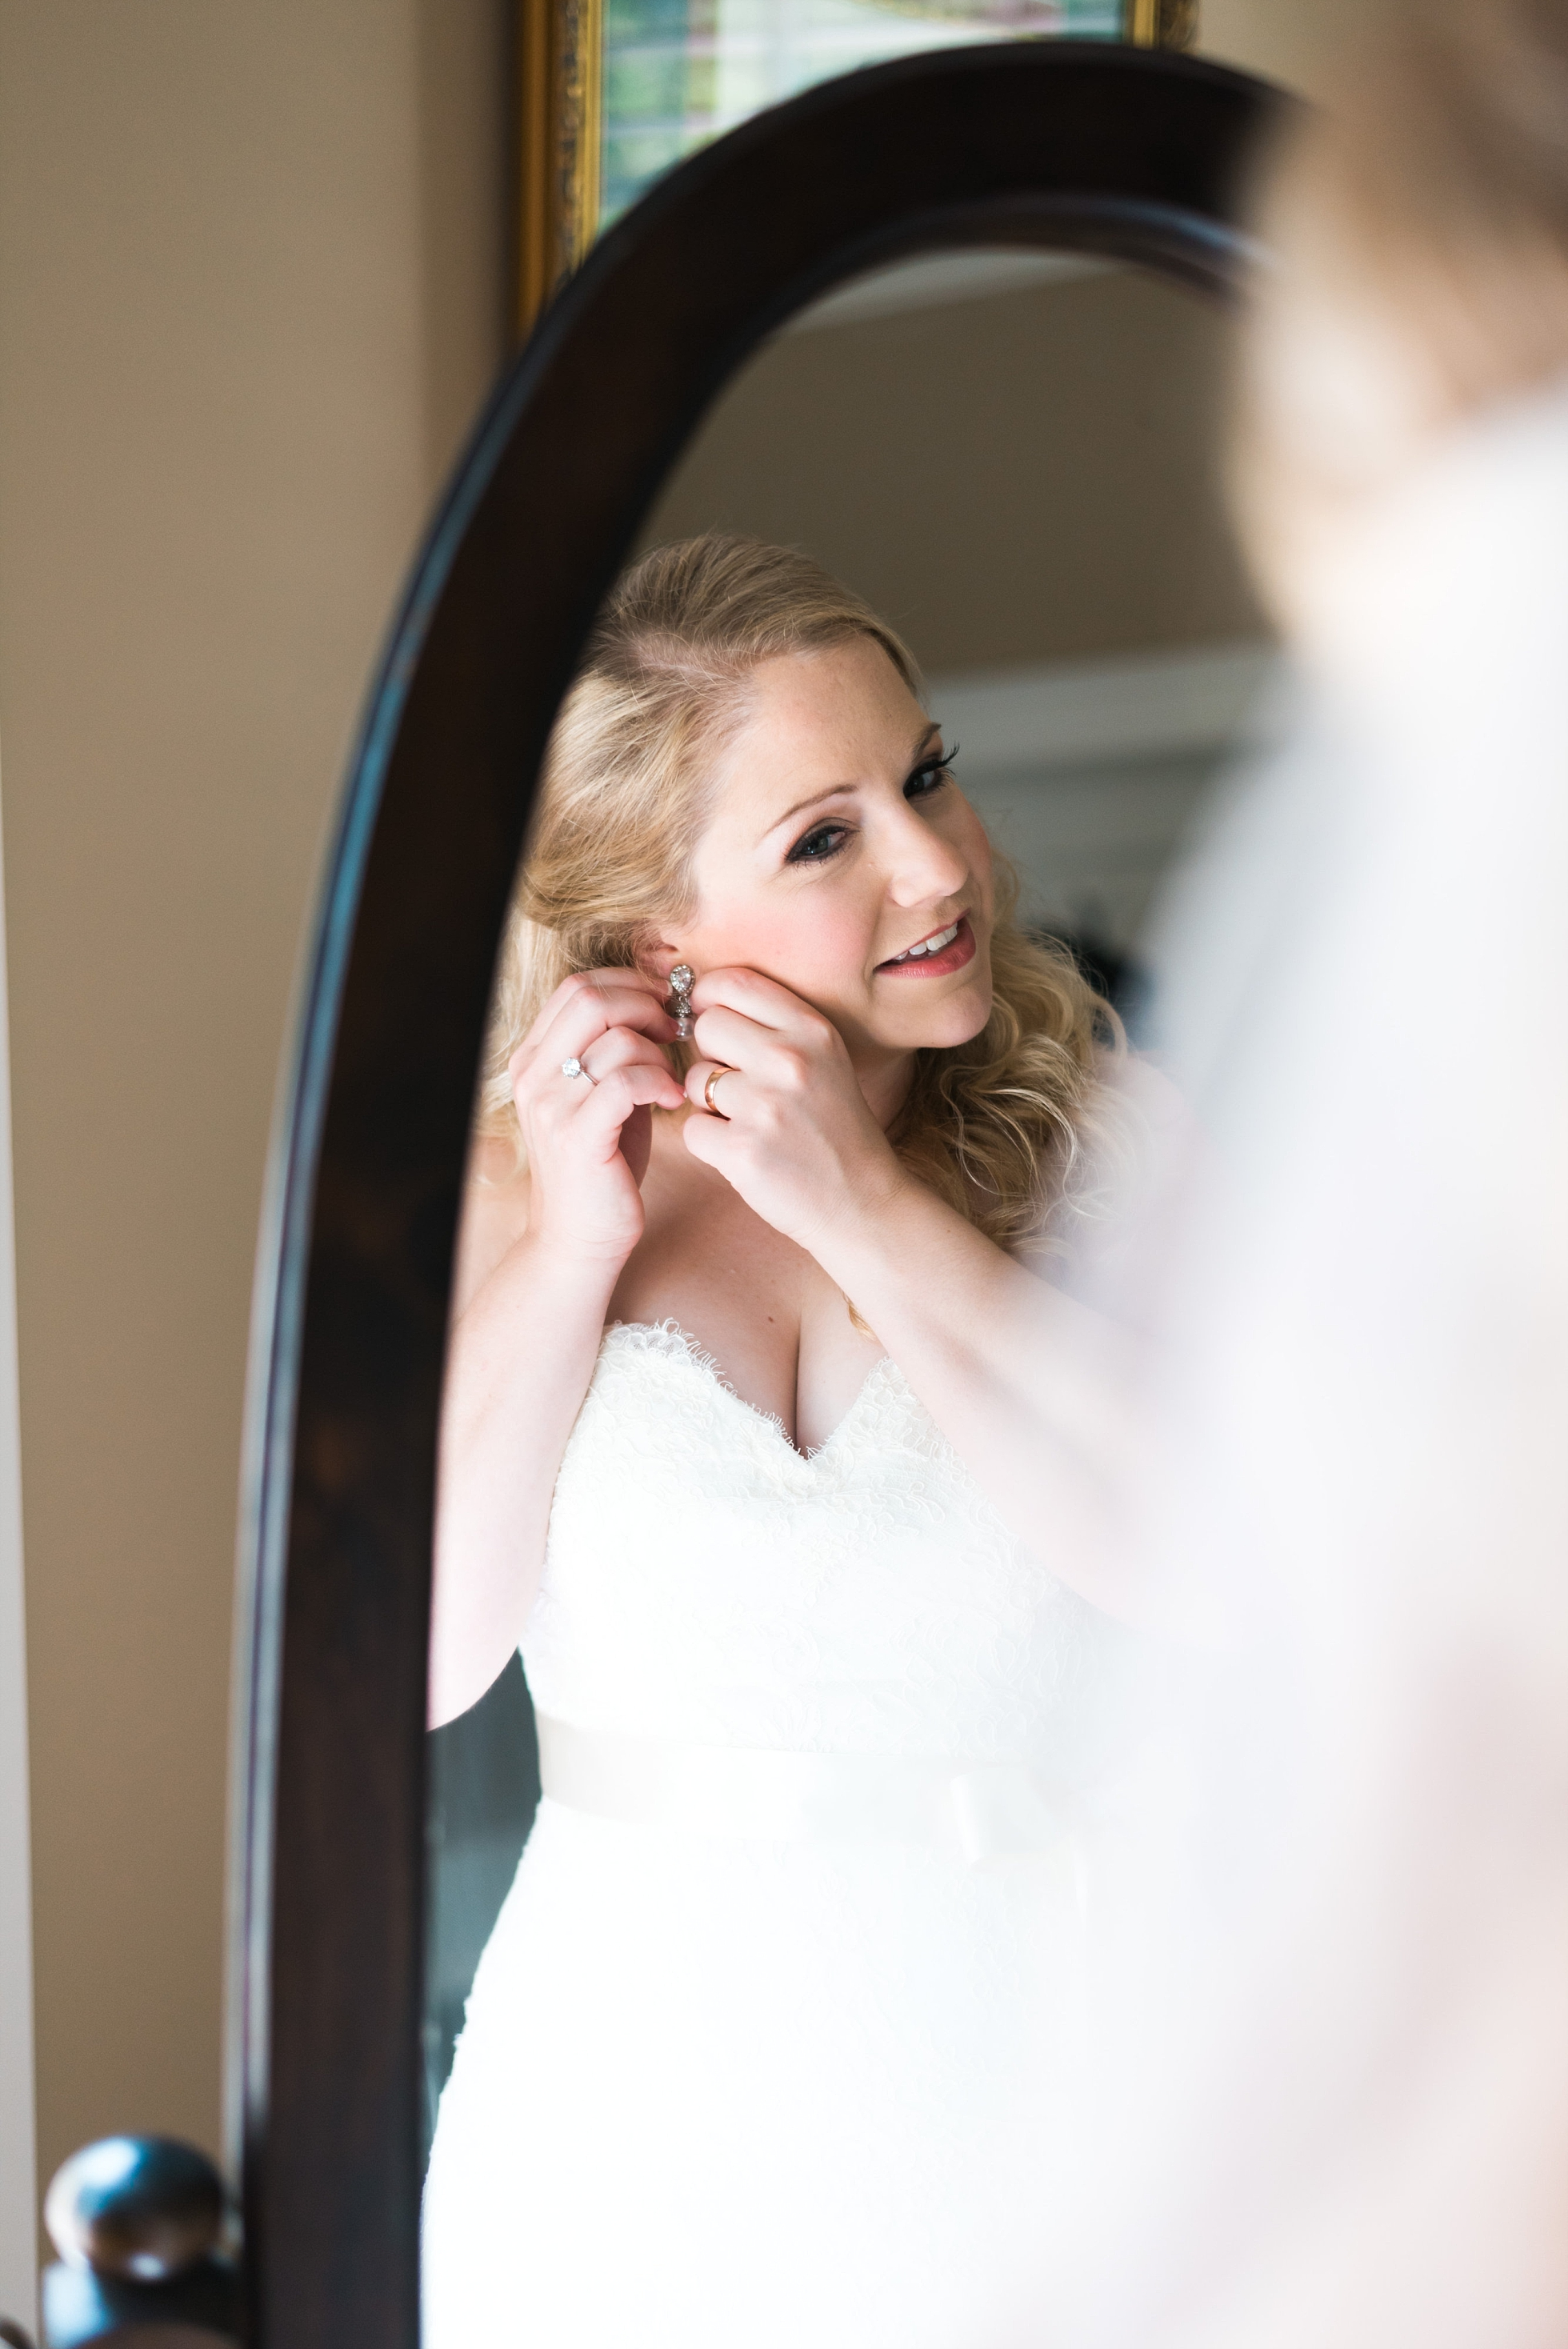 Bride getting ready| Kyle & Erin | Scarbrough Wedding | Children's Harbor | Laura Wilkerson Photography